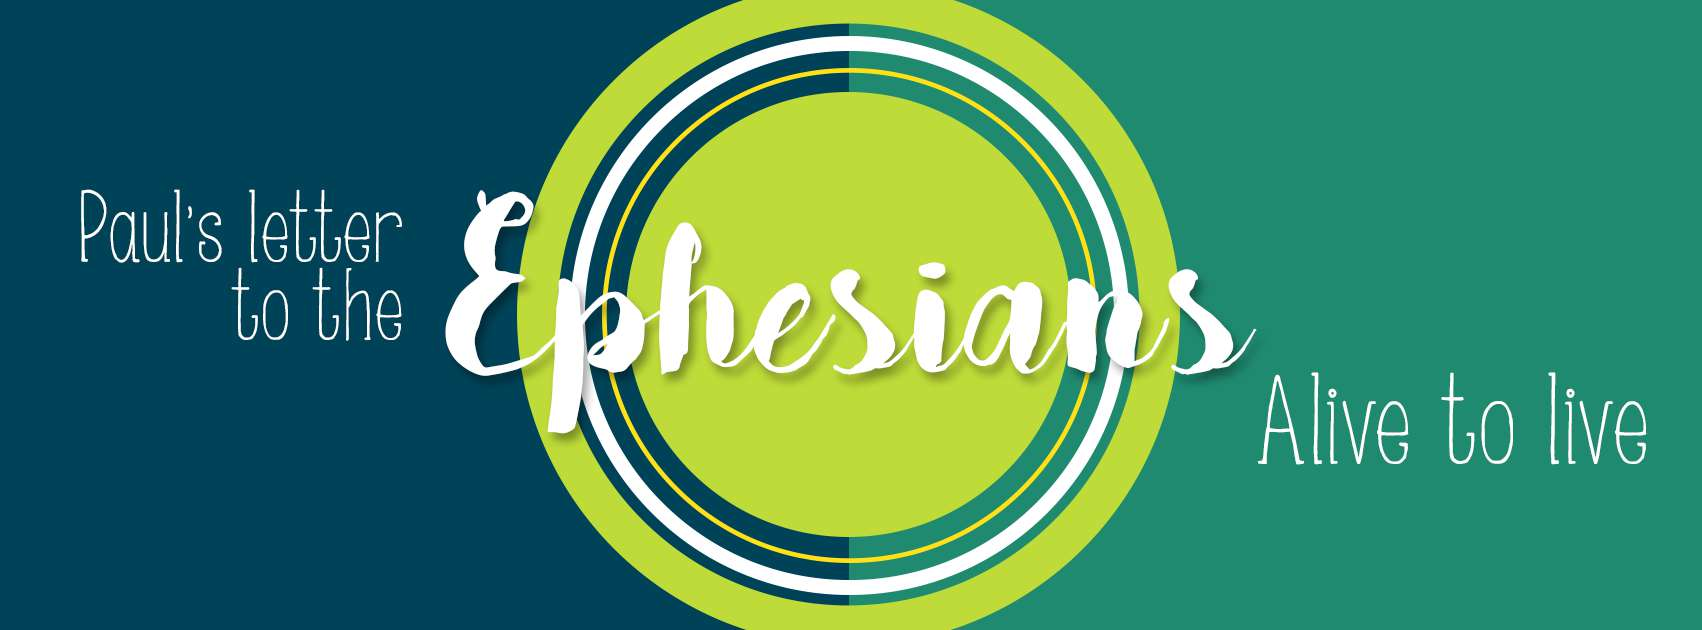 Ephesians: Alive To Live, Part 4: 2:1-10